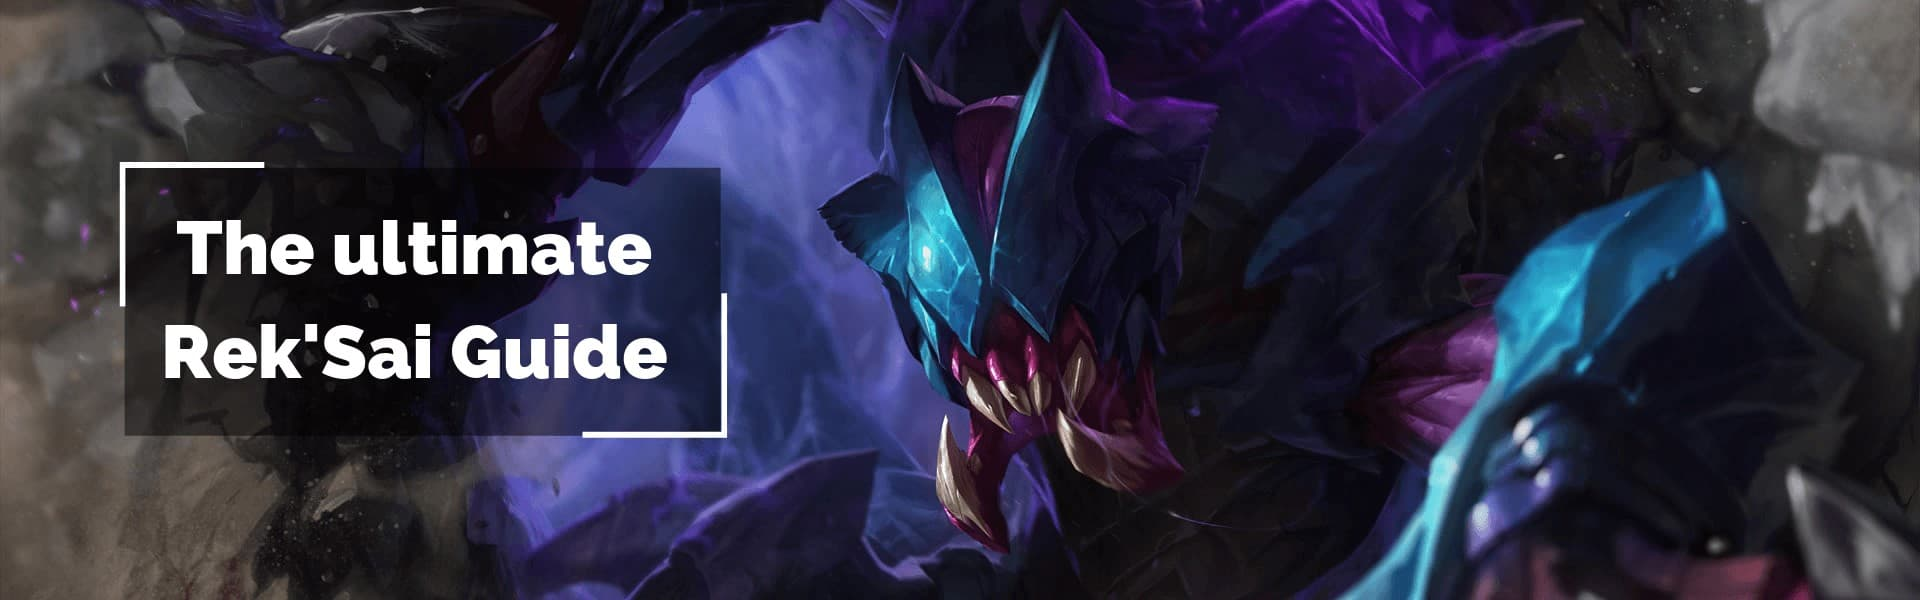 The ultimate Rek'Sai Guide